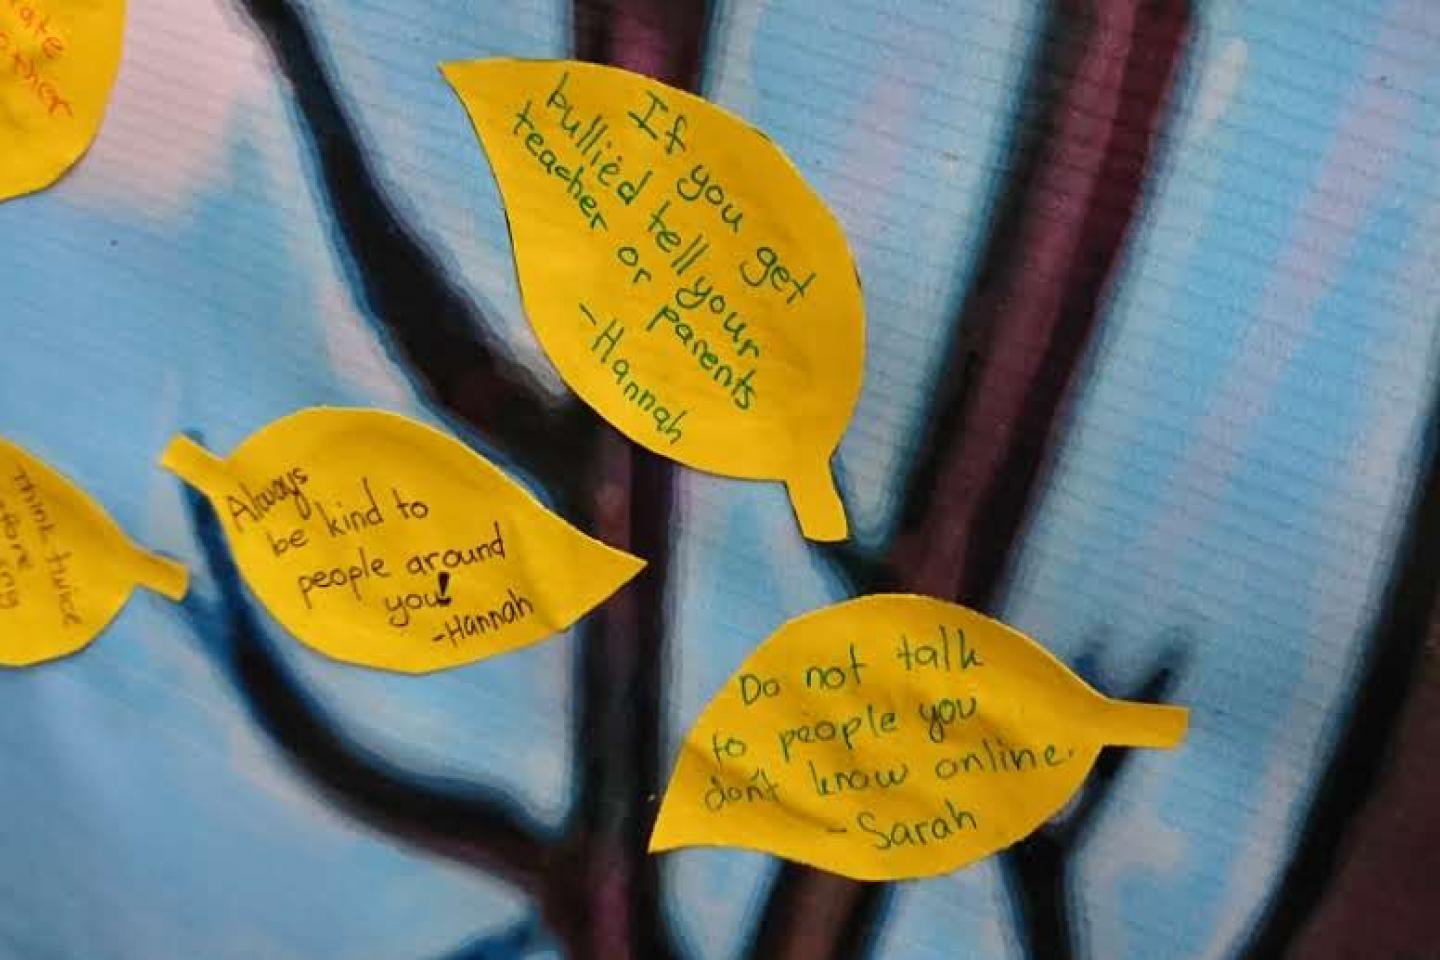 Post its with kind messages